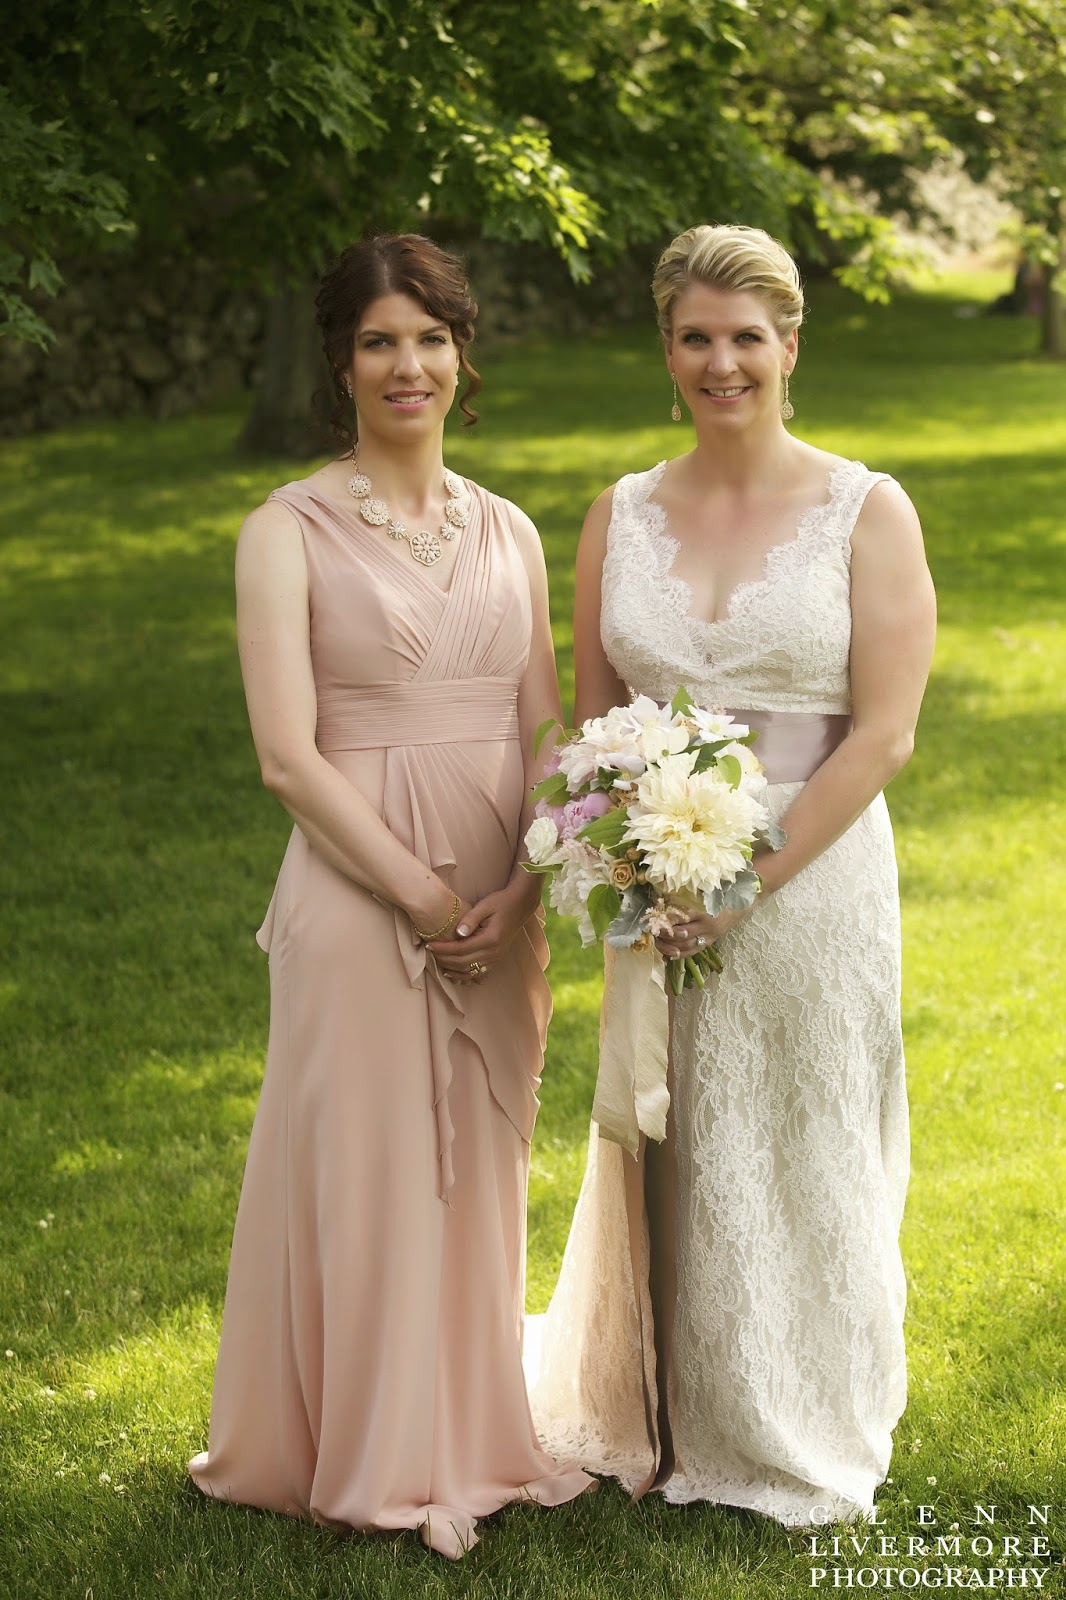 lace bridal gown with blush dusty rose pink : new england summer estate wedding : lanam club : glenn livermore photography : les fleurs : ivory, champagne & pale pink : peony, garden rose & dahlia